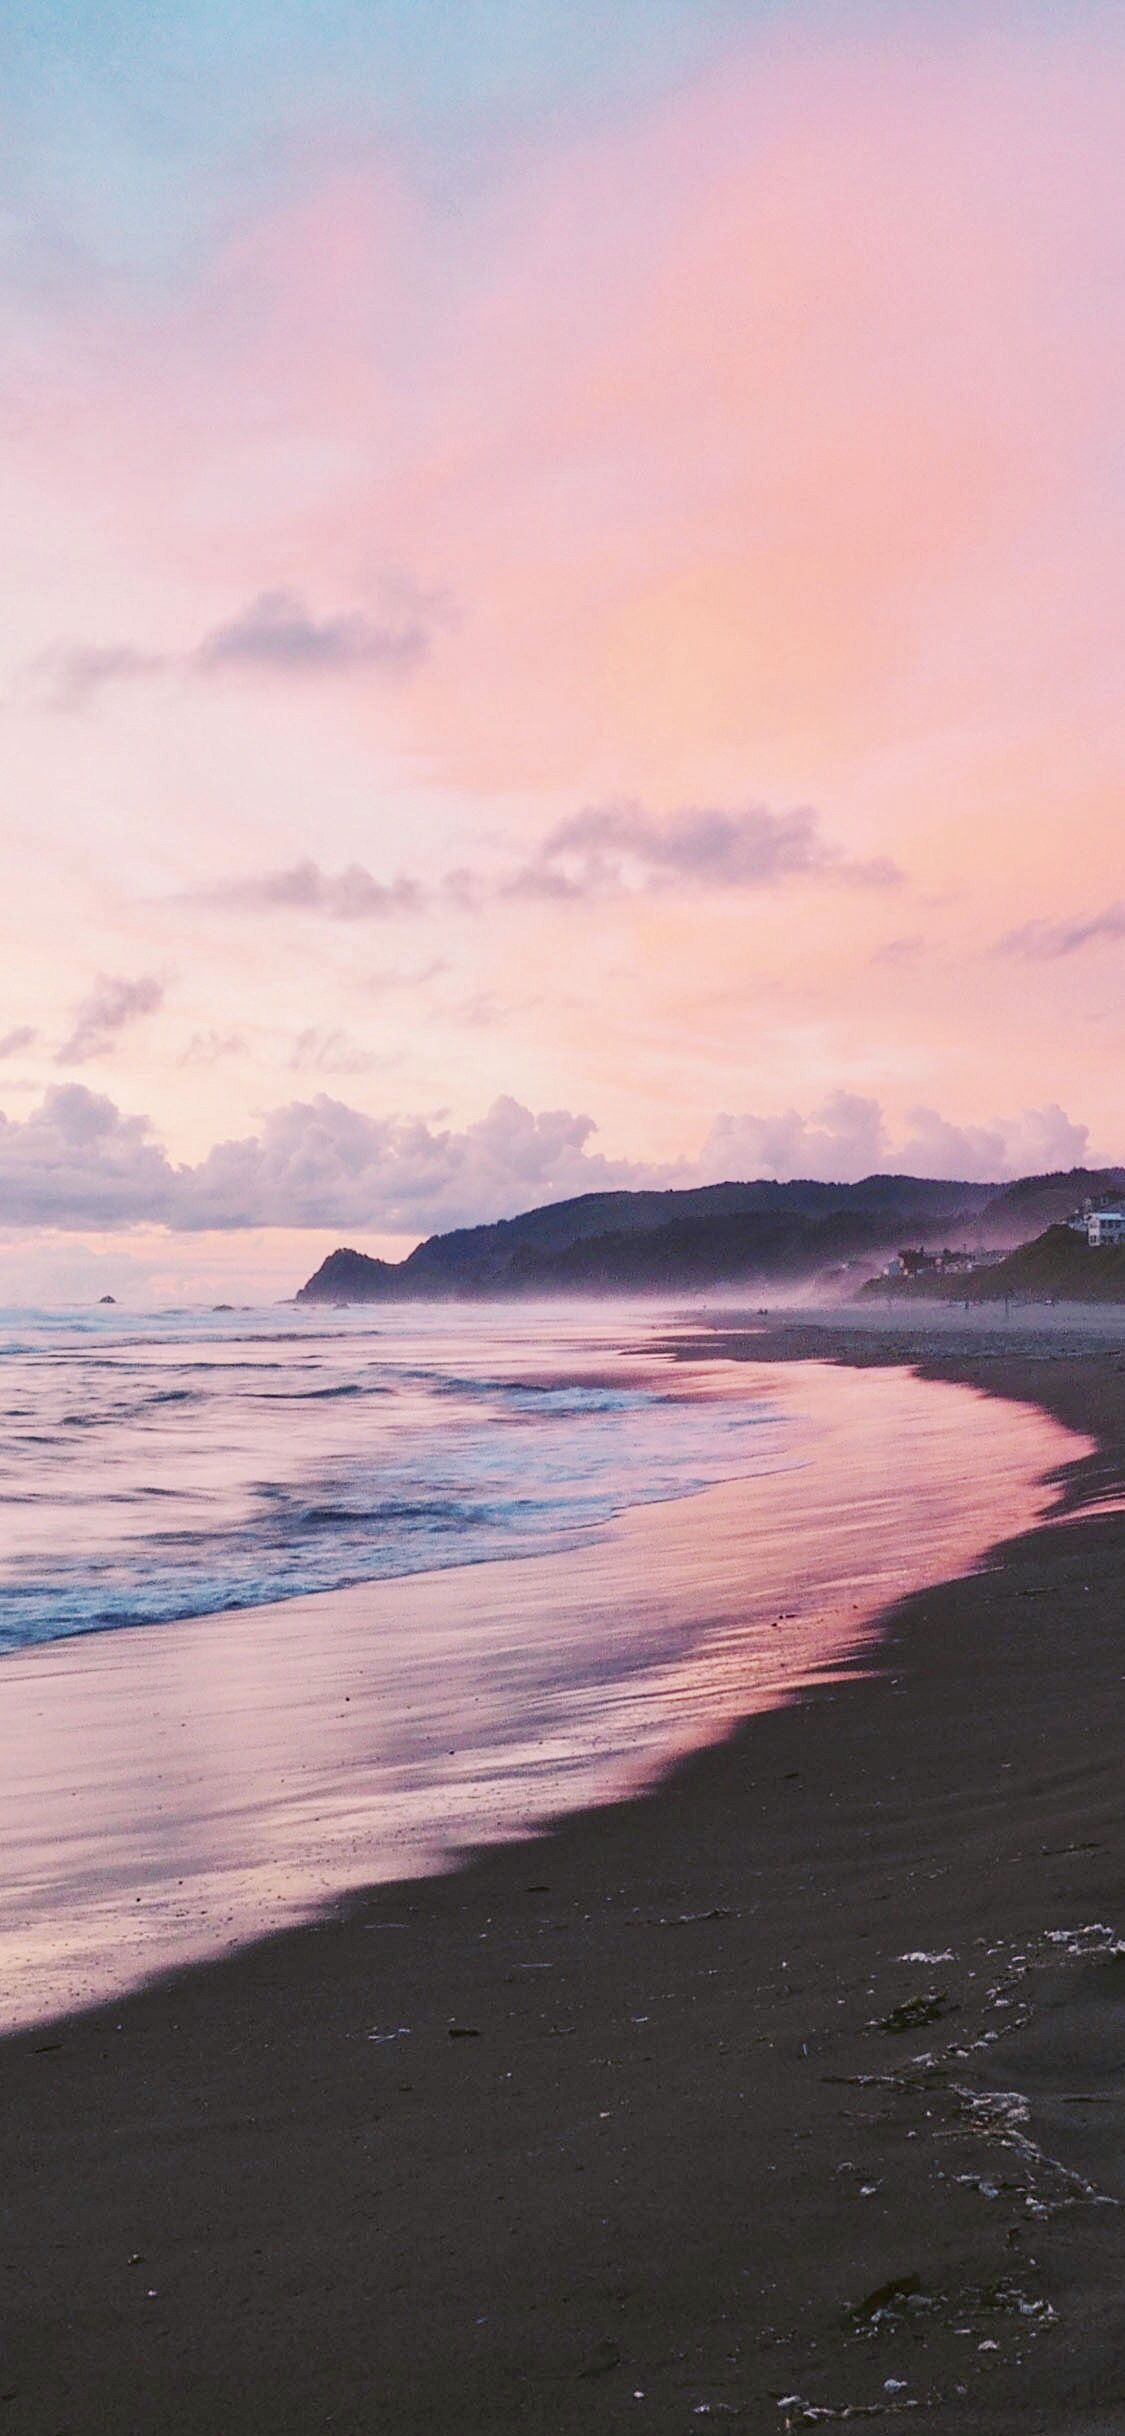 Pin By Jackie Day On Random Ish Sunset Iphone Wallpaper Beach Wallpaper Iphone Pink Wallpaper Iphone